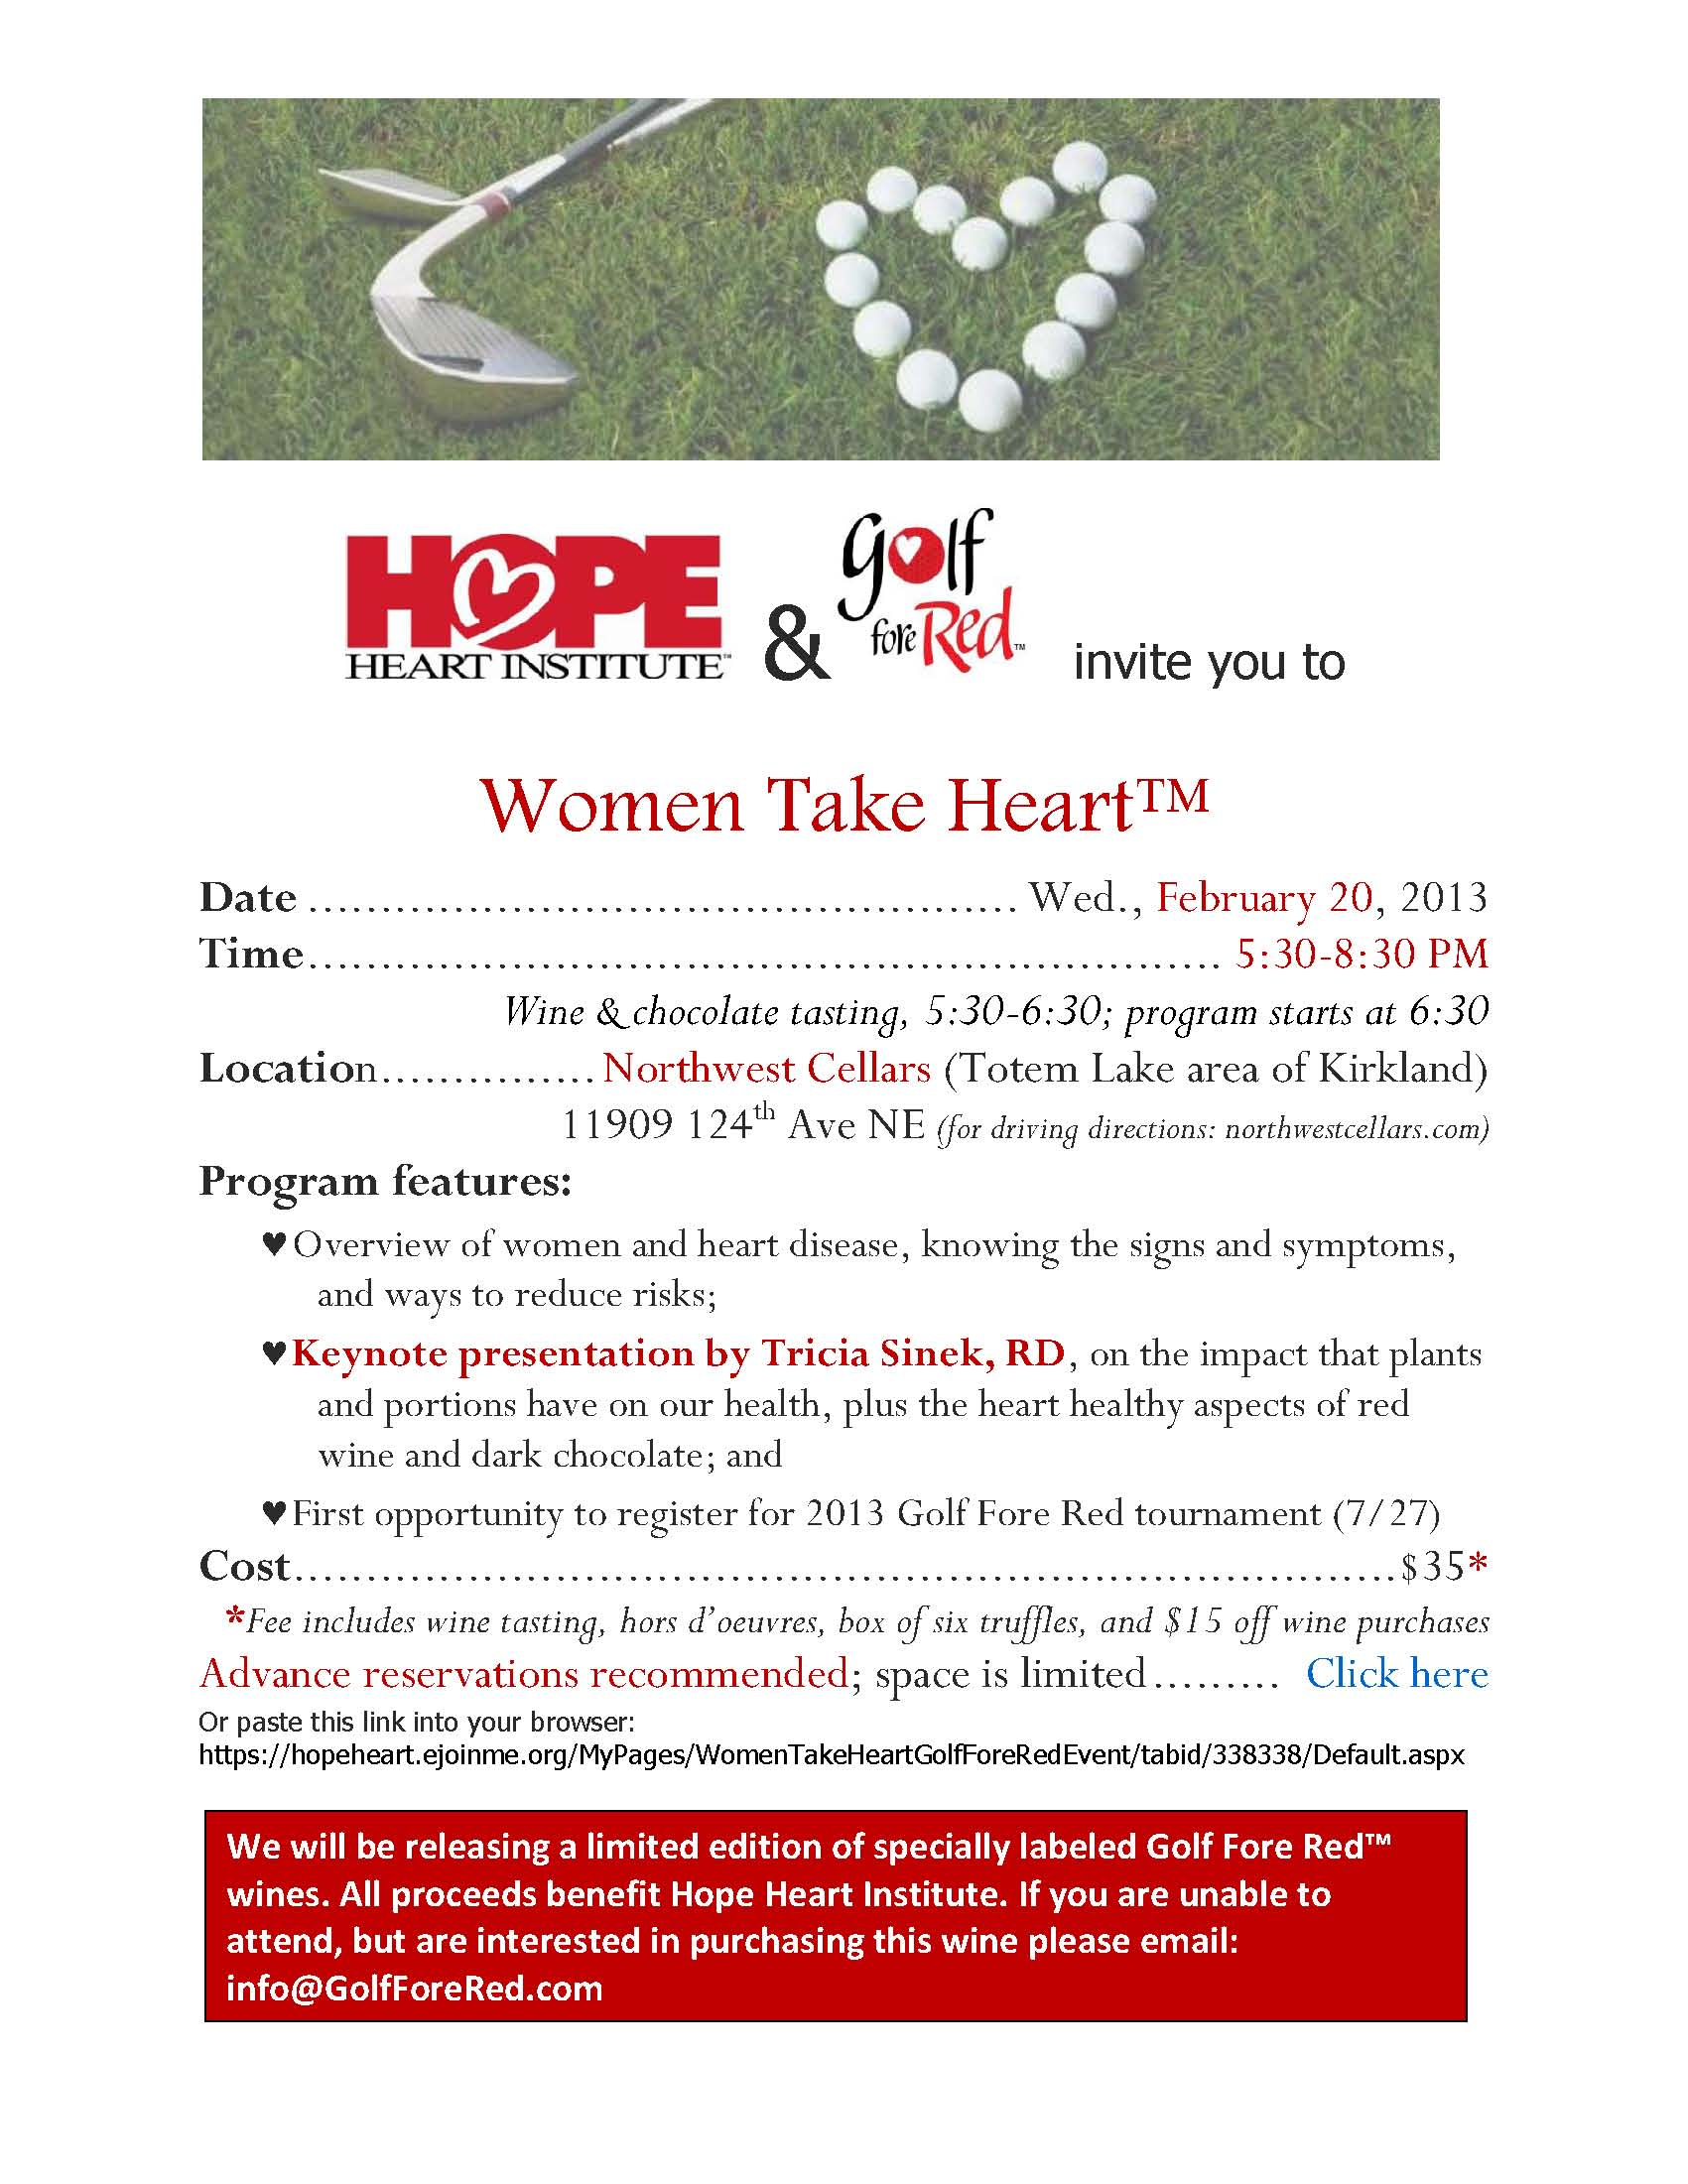 Women Take Heart invite with speaker_RSVP link_directions